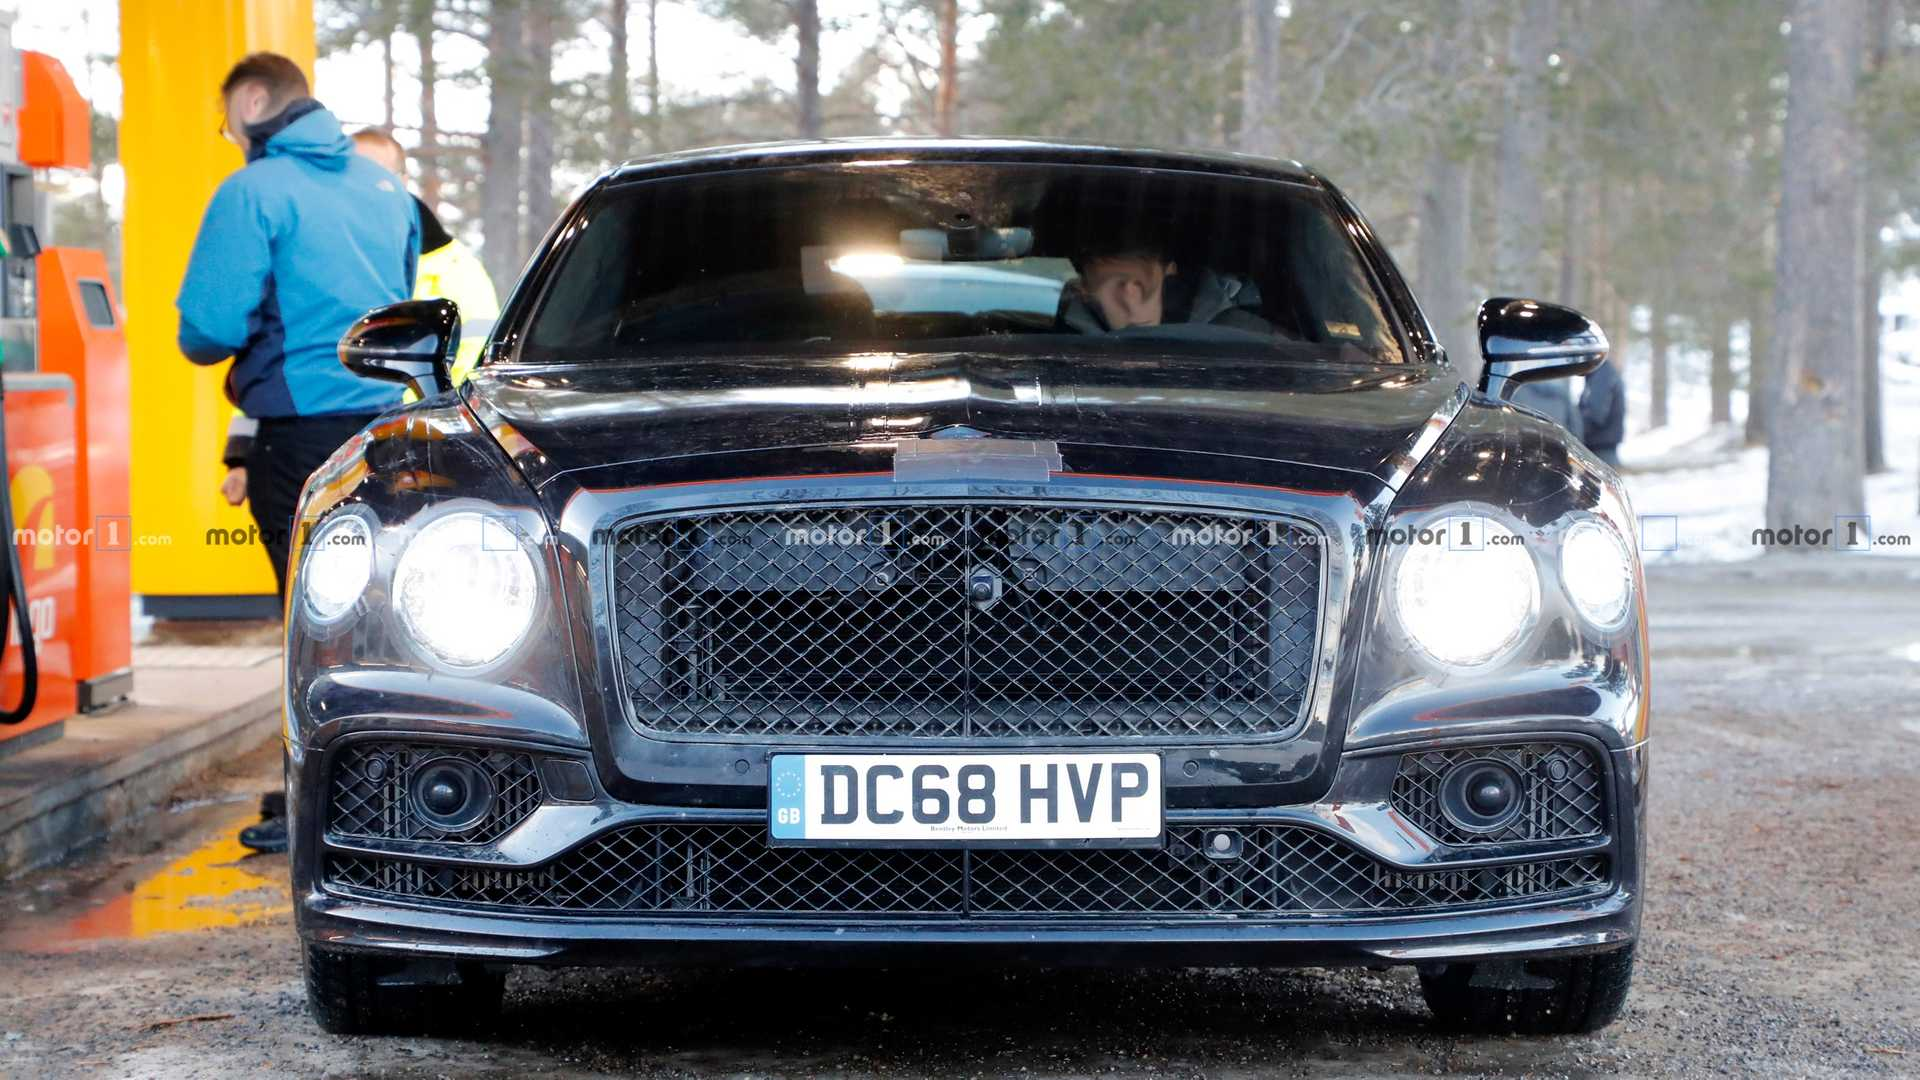 2019 - [Bentley] Flying Spur - Page 2 2020-bentley-flying-spur-spy-photo